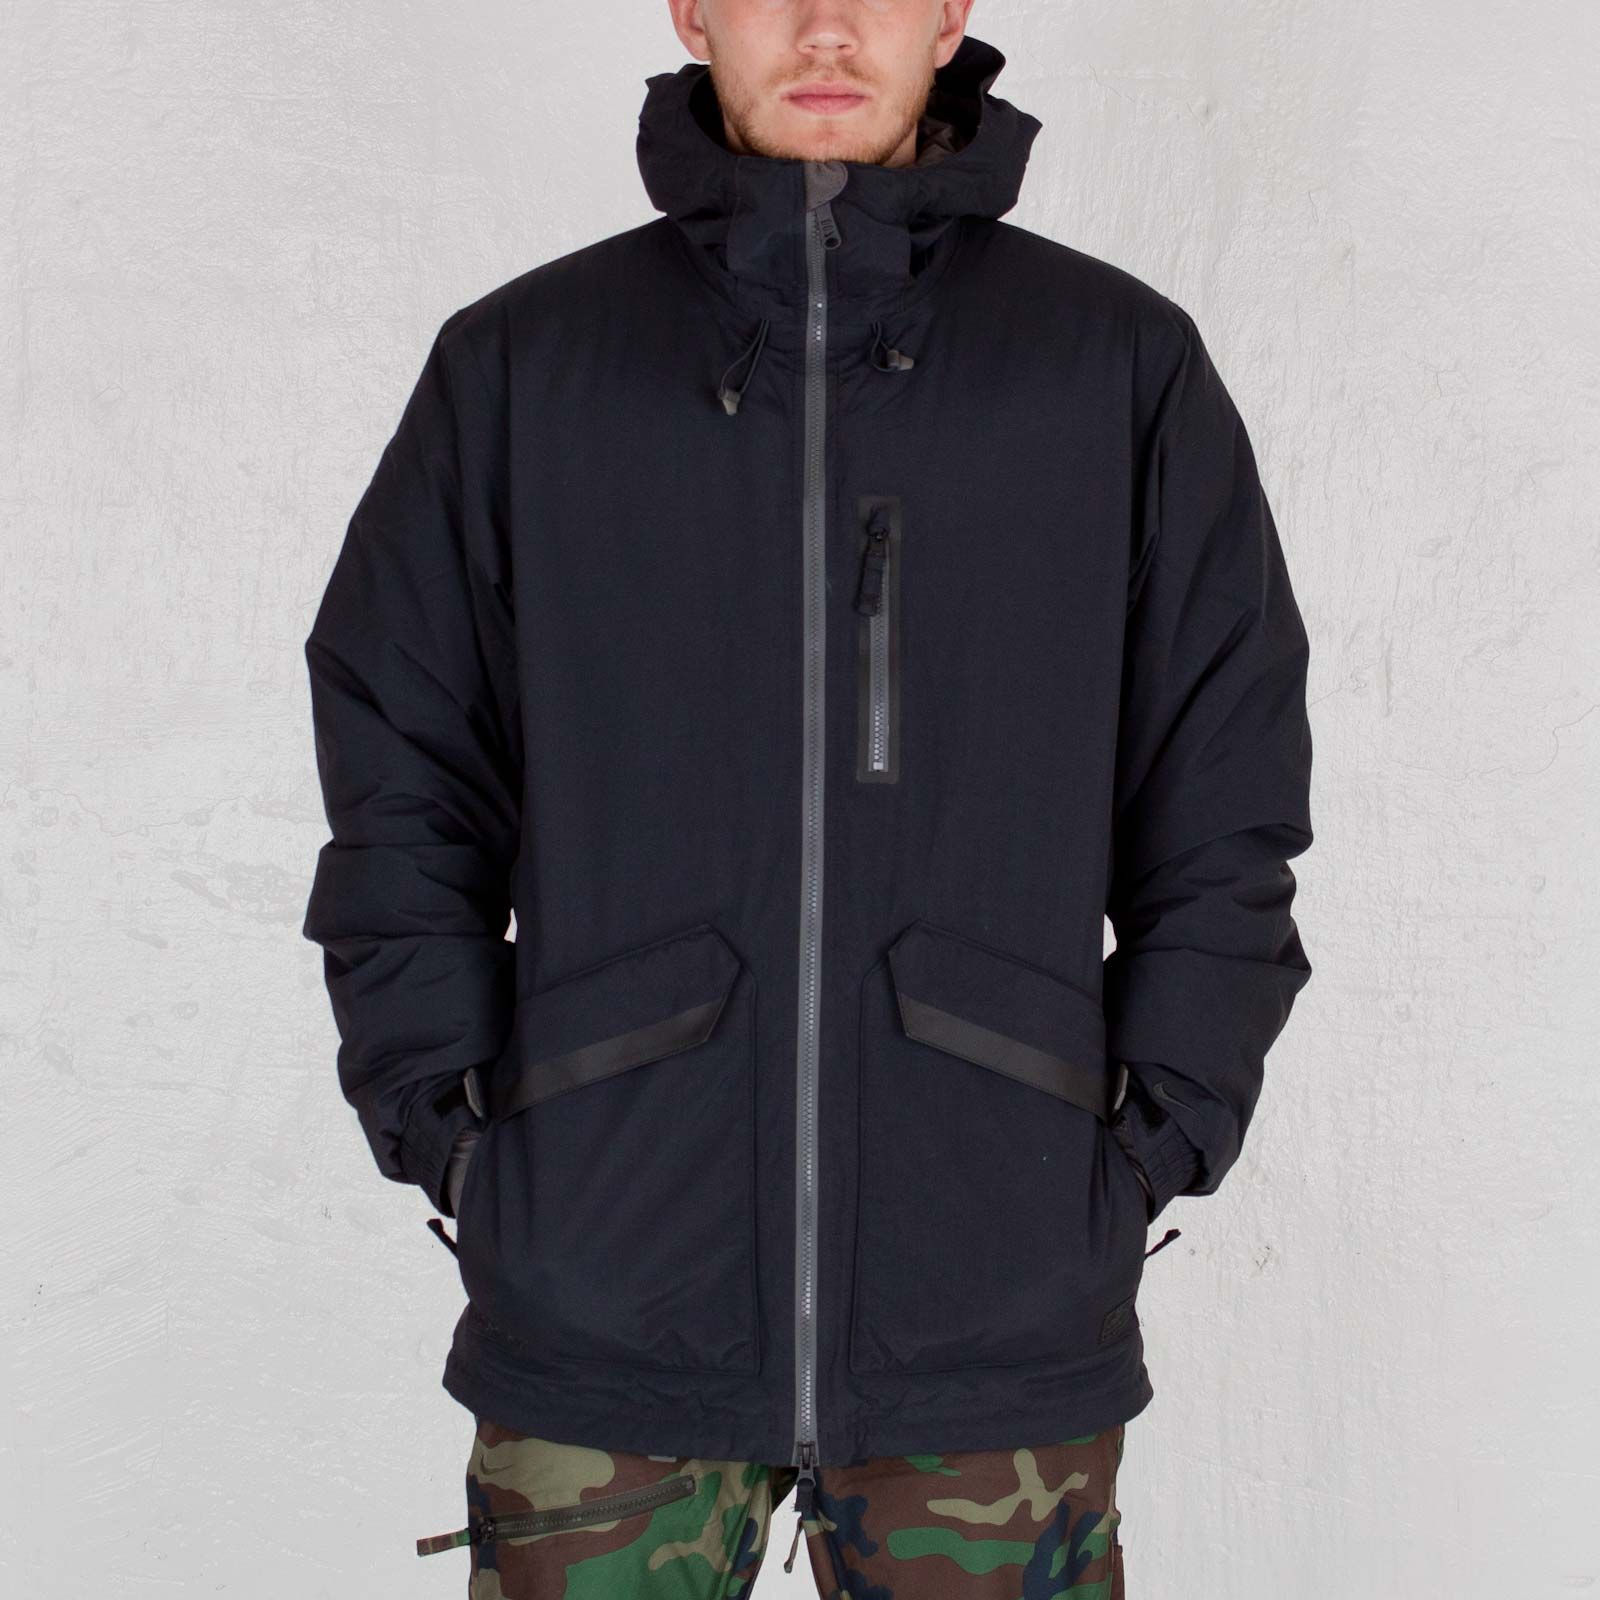 Nike Gore Down Jacket | Jackets, Outdoor outfit, Streetwear